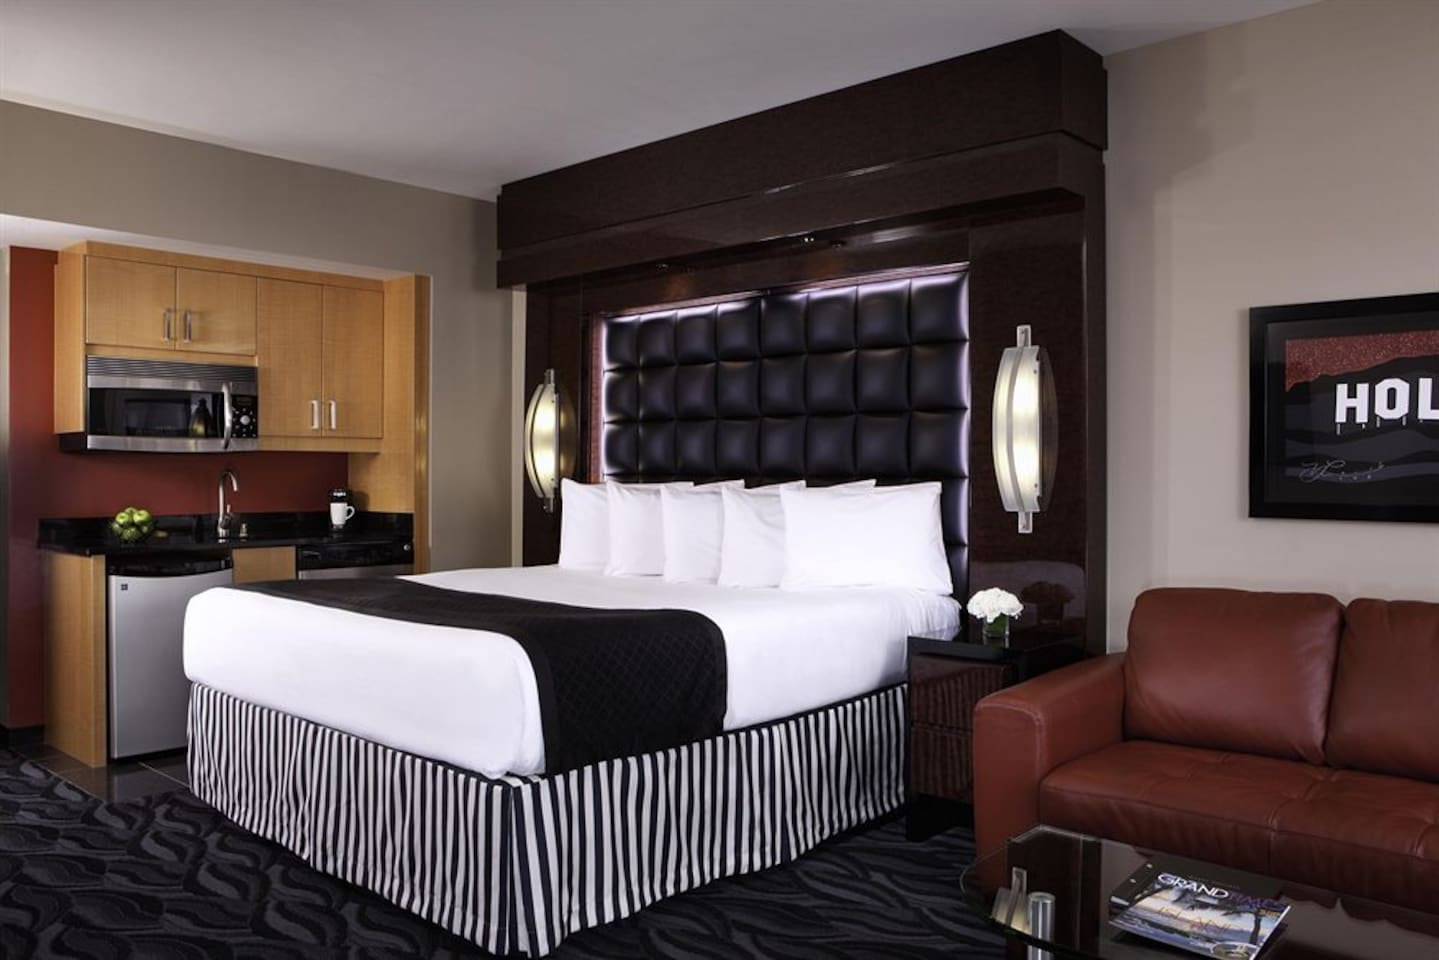 elara 2 bedroom suite. Elara Planet Hollywood 2 Bedroom Suite in Las Vegas  Nevada United States